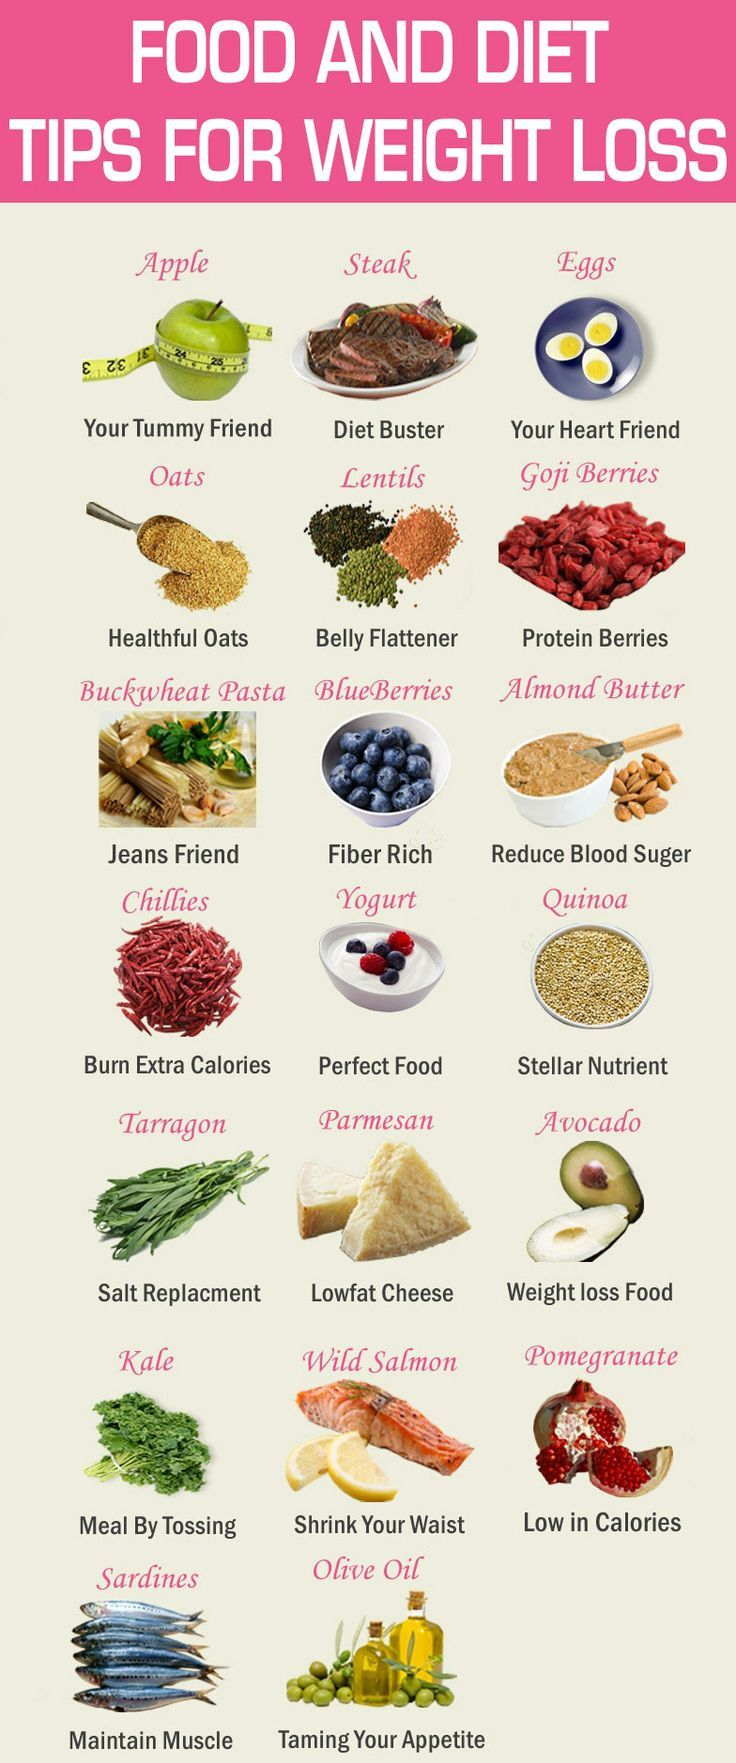 Diet Plan To Lose Weight Fast : Best Weight Loss Foods - Visit www ...